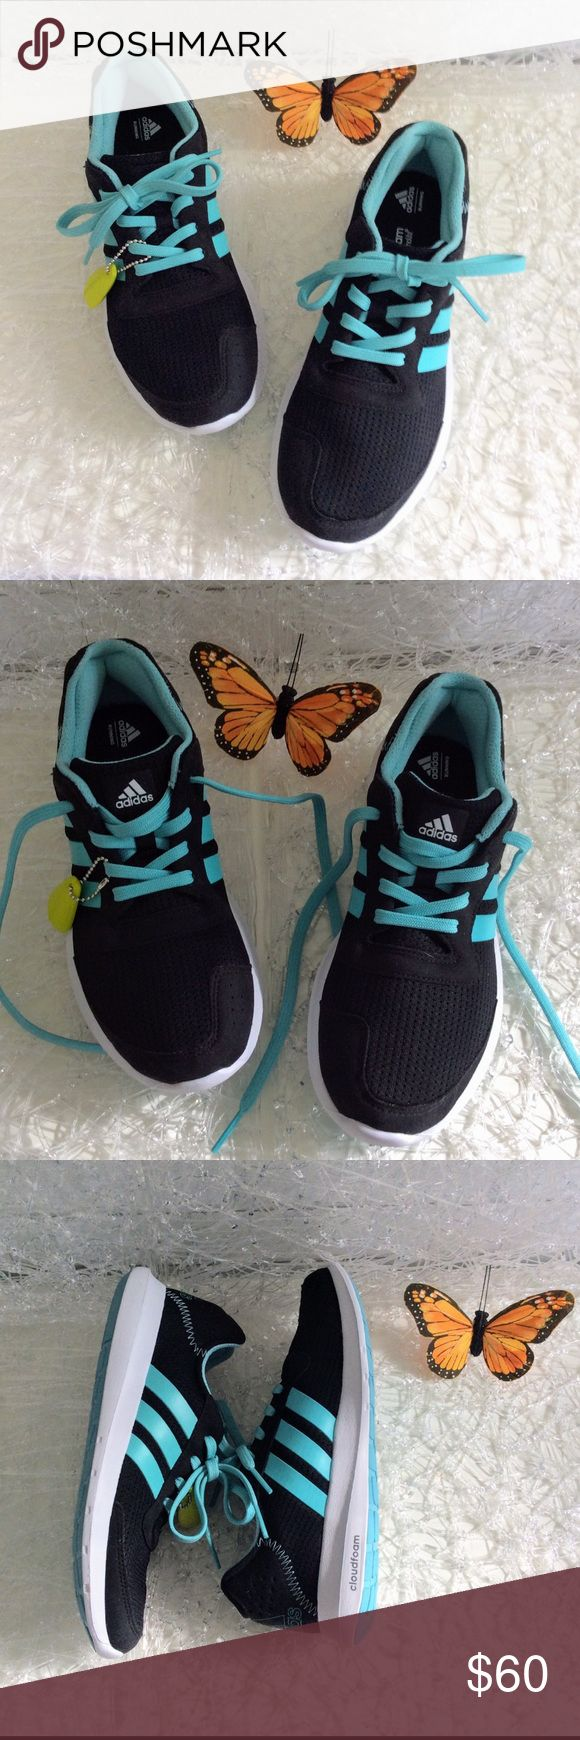 NWOT Adidas Cloud Foam Running Sneakers 7.5 Perfect lightweight and comfy running sneakers from Adidas. Brand New never worn without tags in mint condition. Size 7.5 adidas Shoes Sneakers